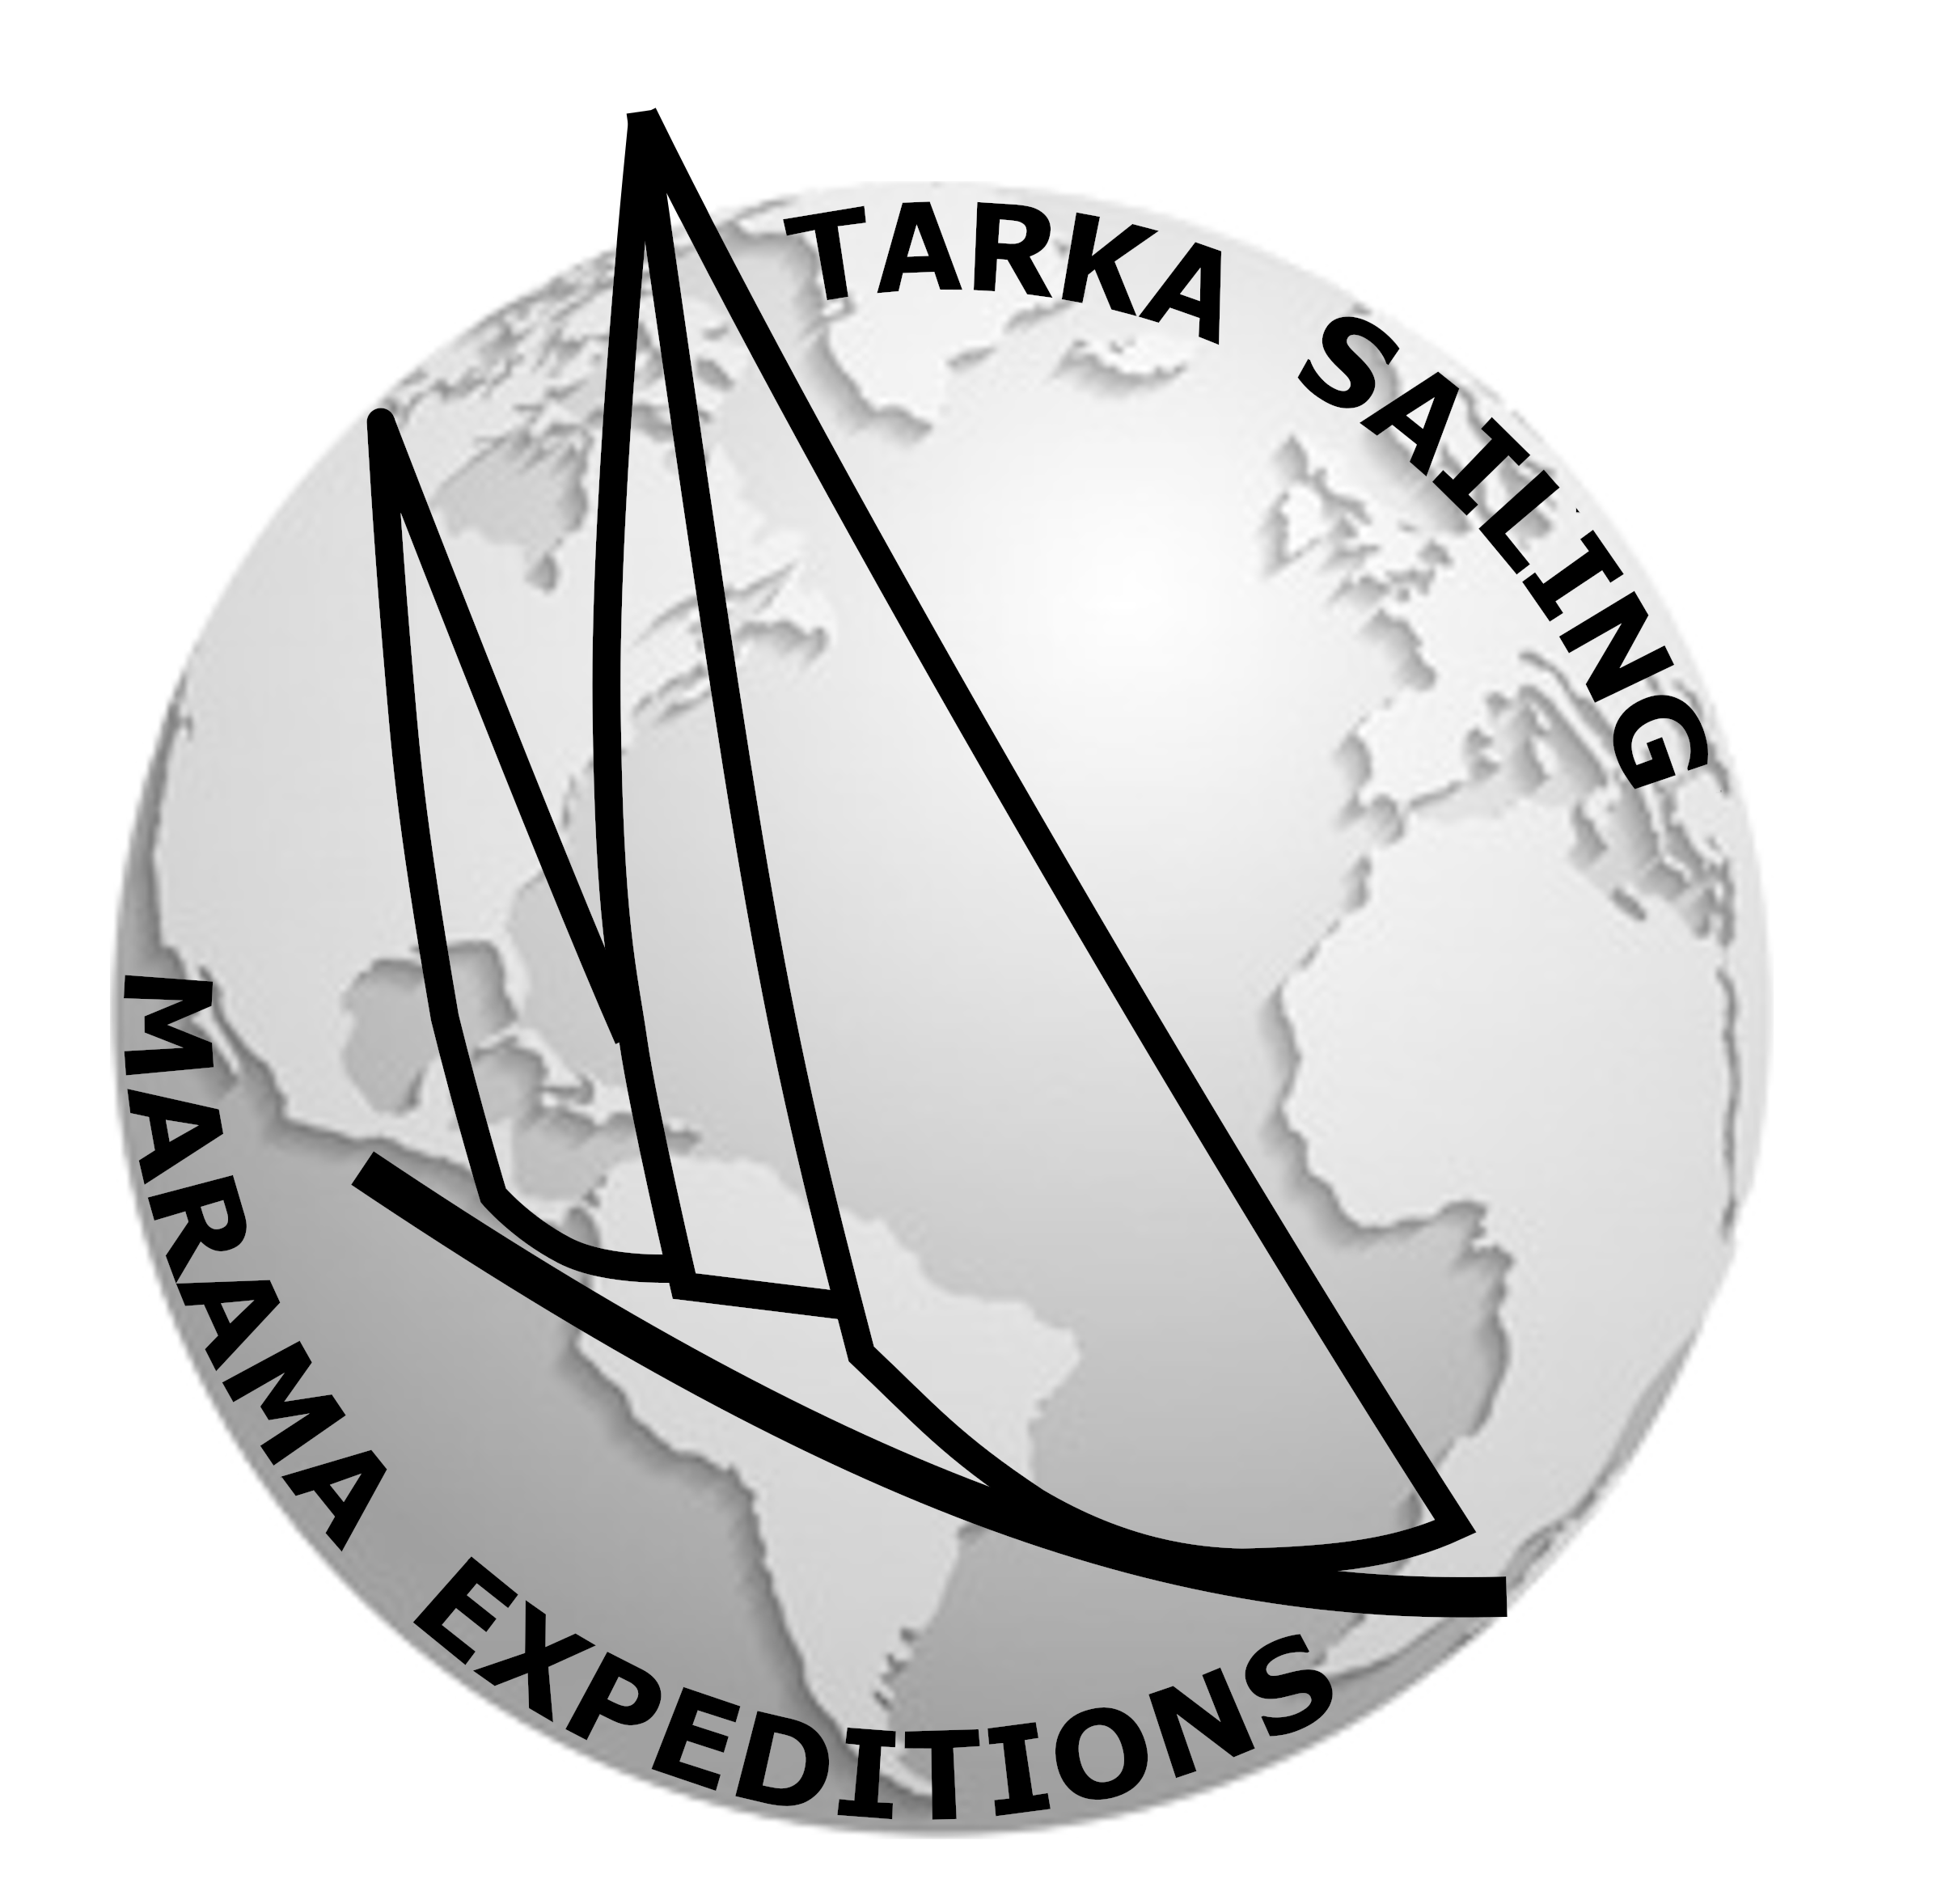 Marama Expeditions